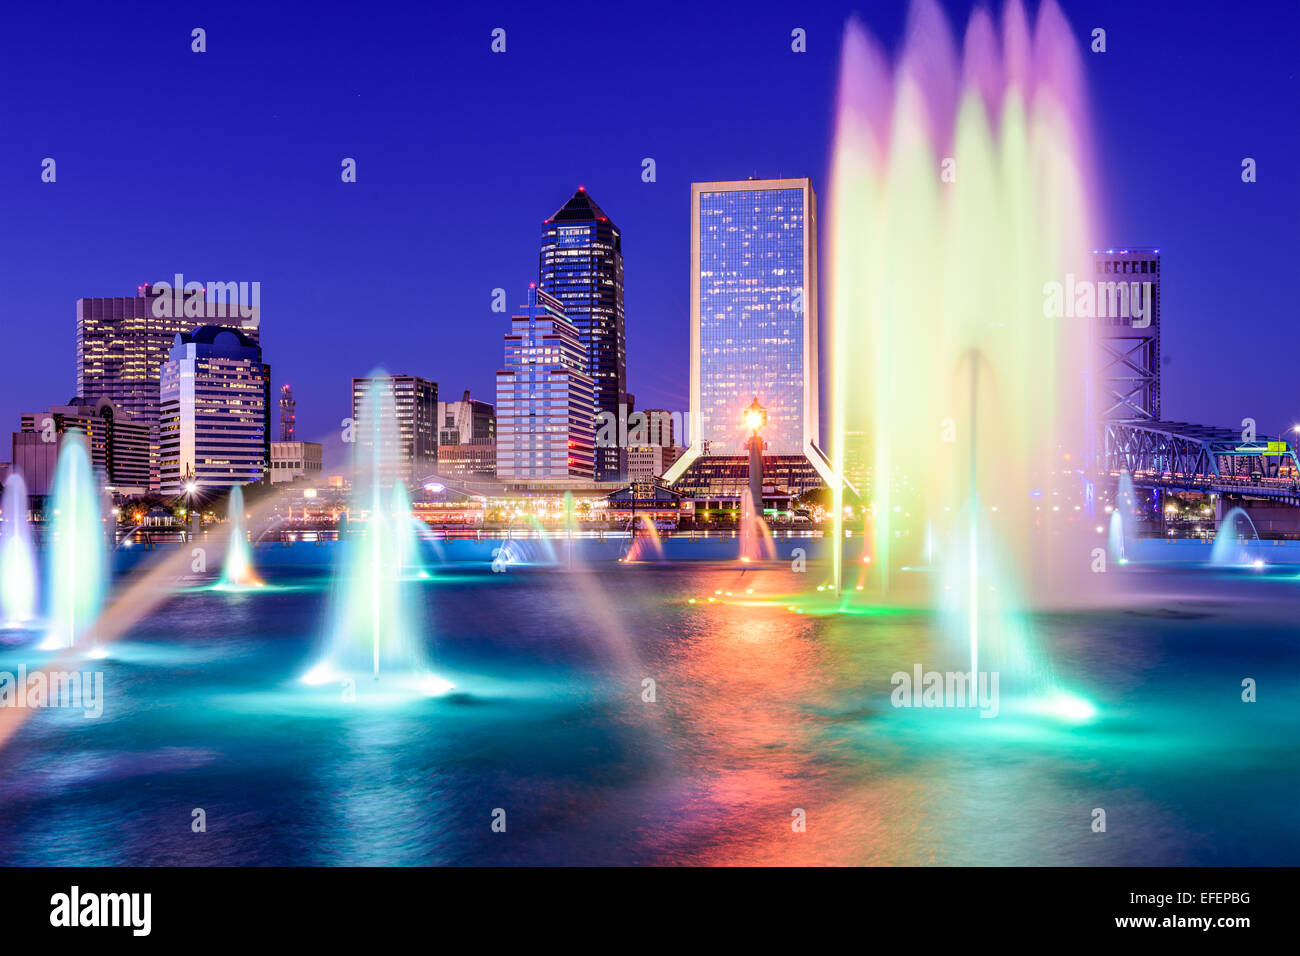 Jacksonville, Florida, USA skyline at the fountain. - Stock Image